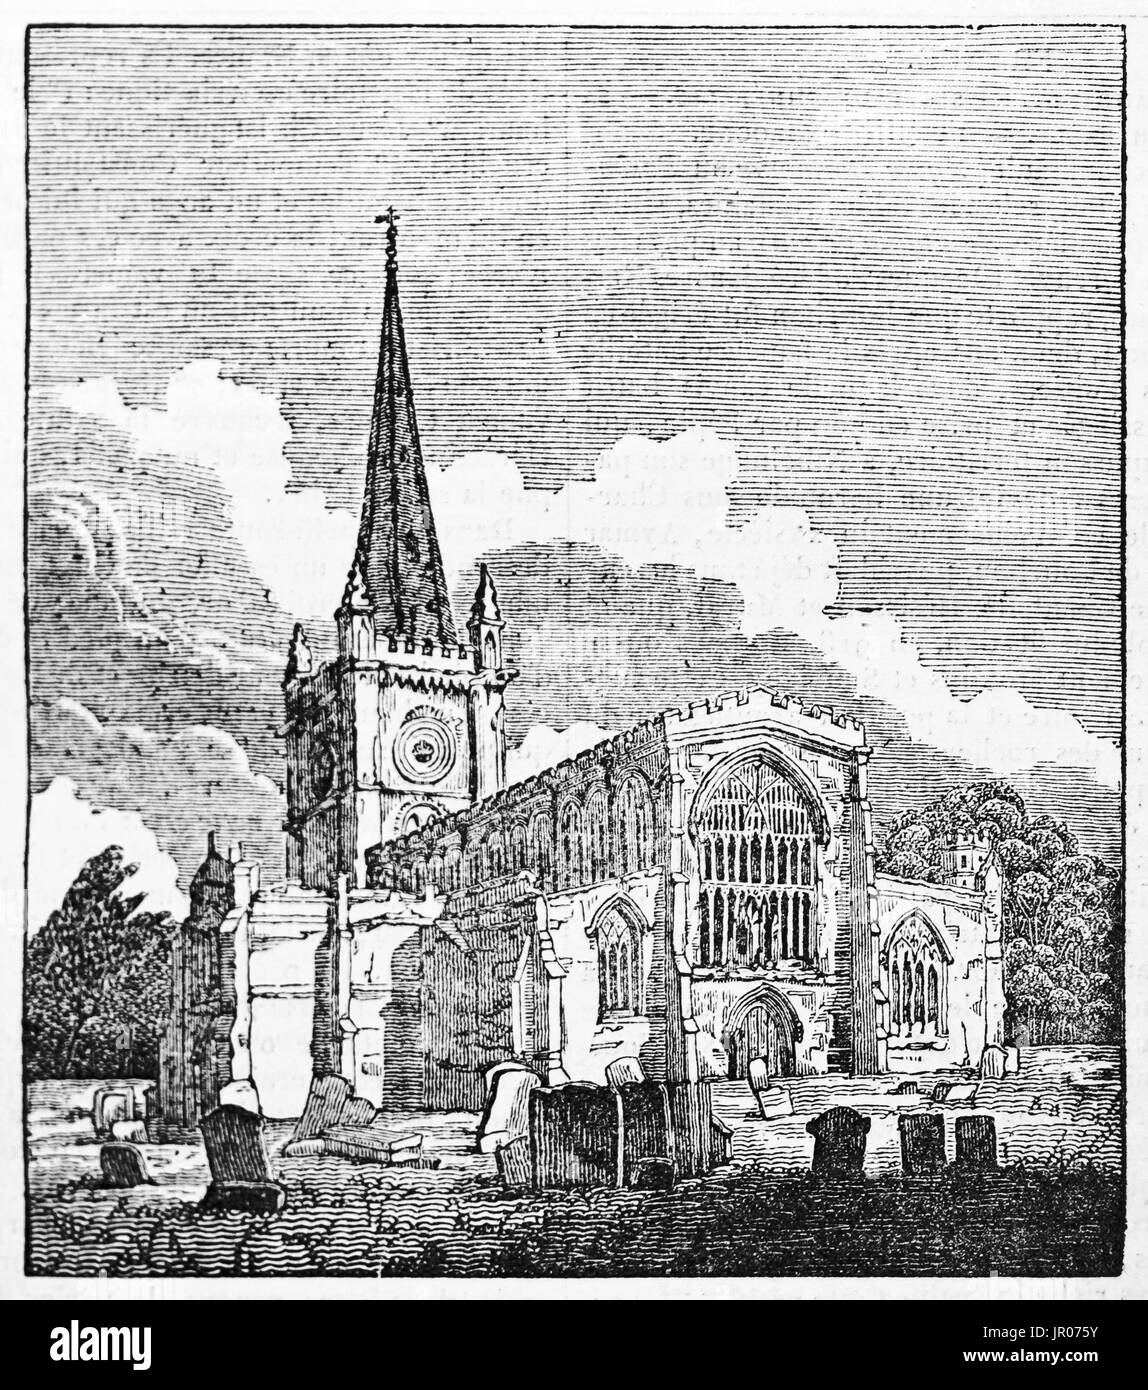 Old view of the Holy Trinity church, Stratford-upon-Avon, England. By unidentified author, published on Magasin Pittoresque, Paris, 1833. - Stock Image